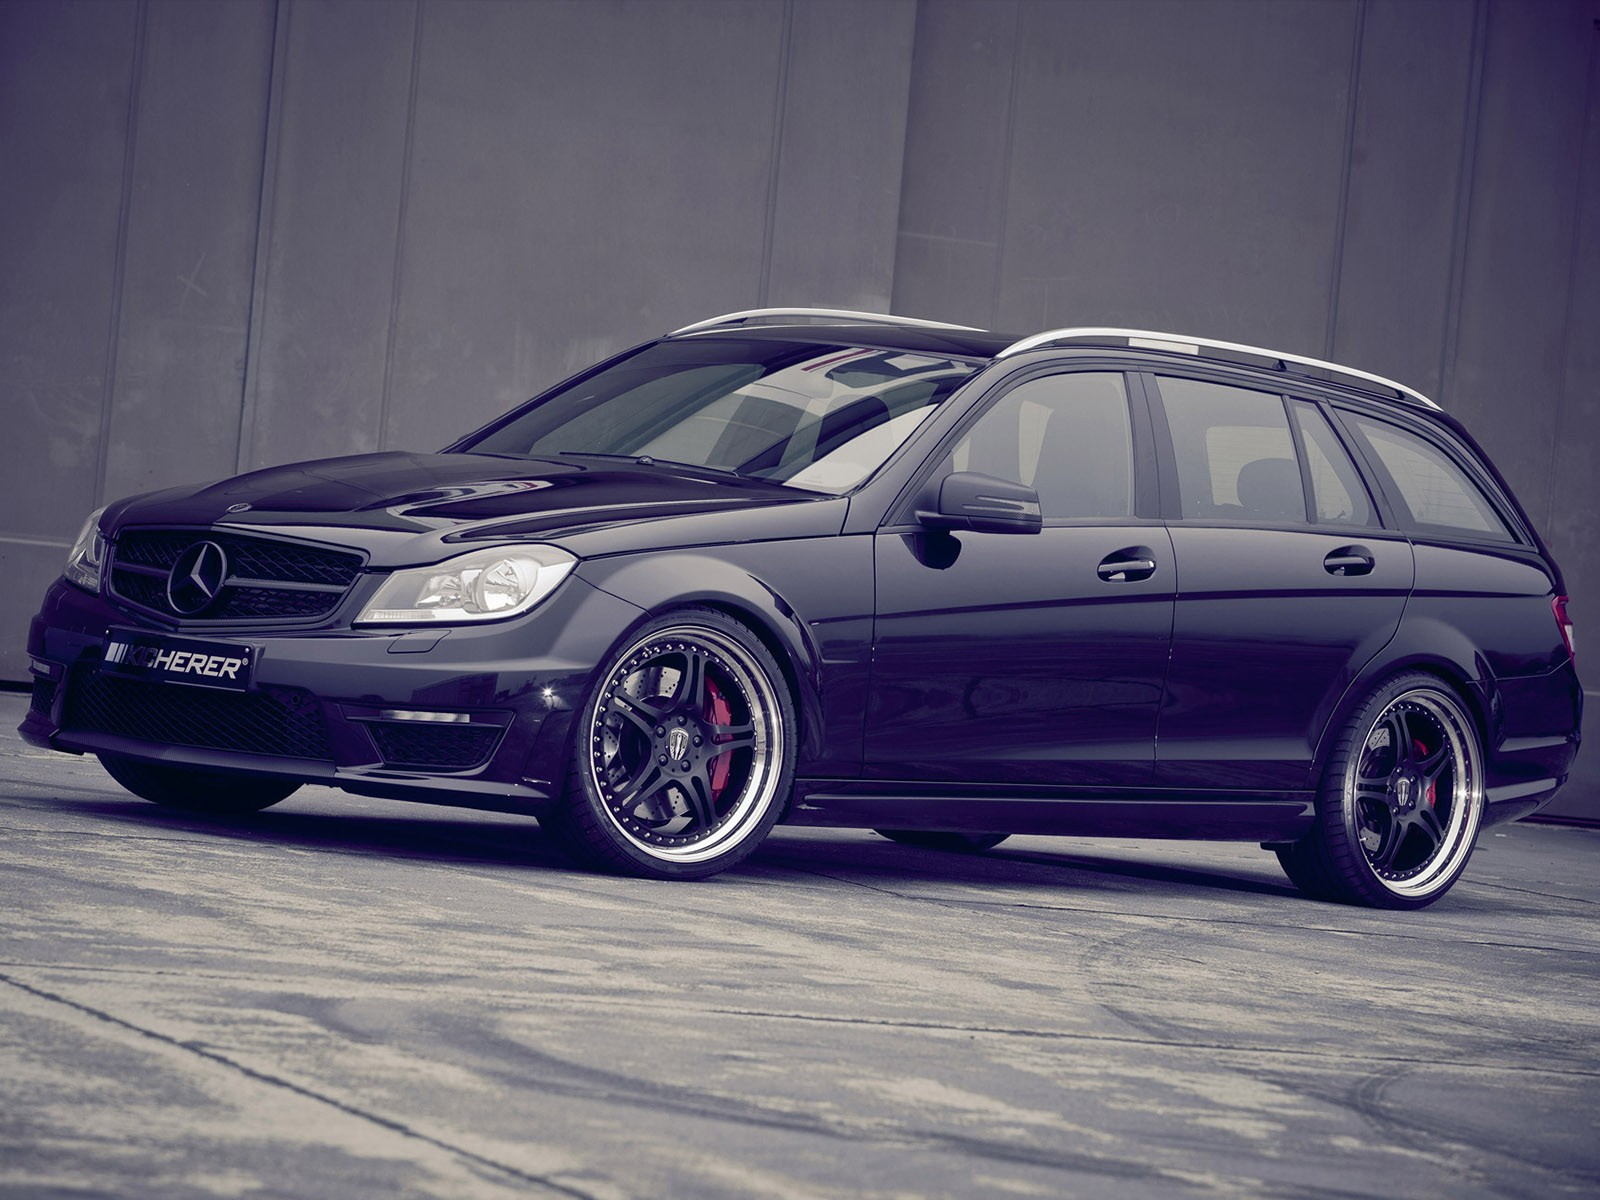 2011 Kicherer Mercedes C Klasse C63 T Supersport